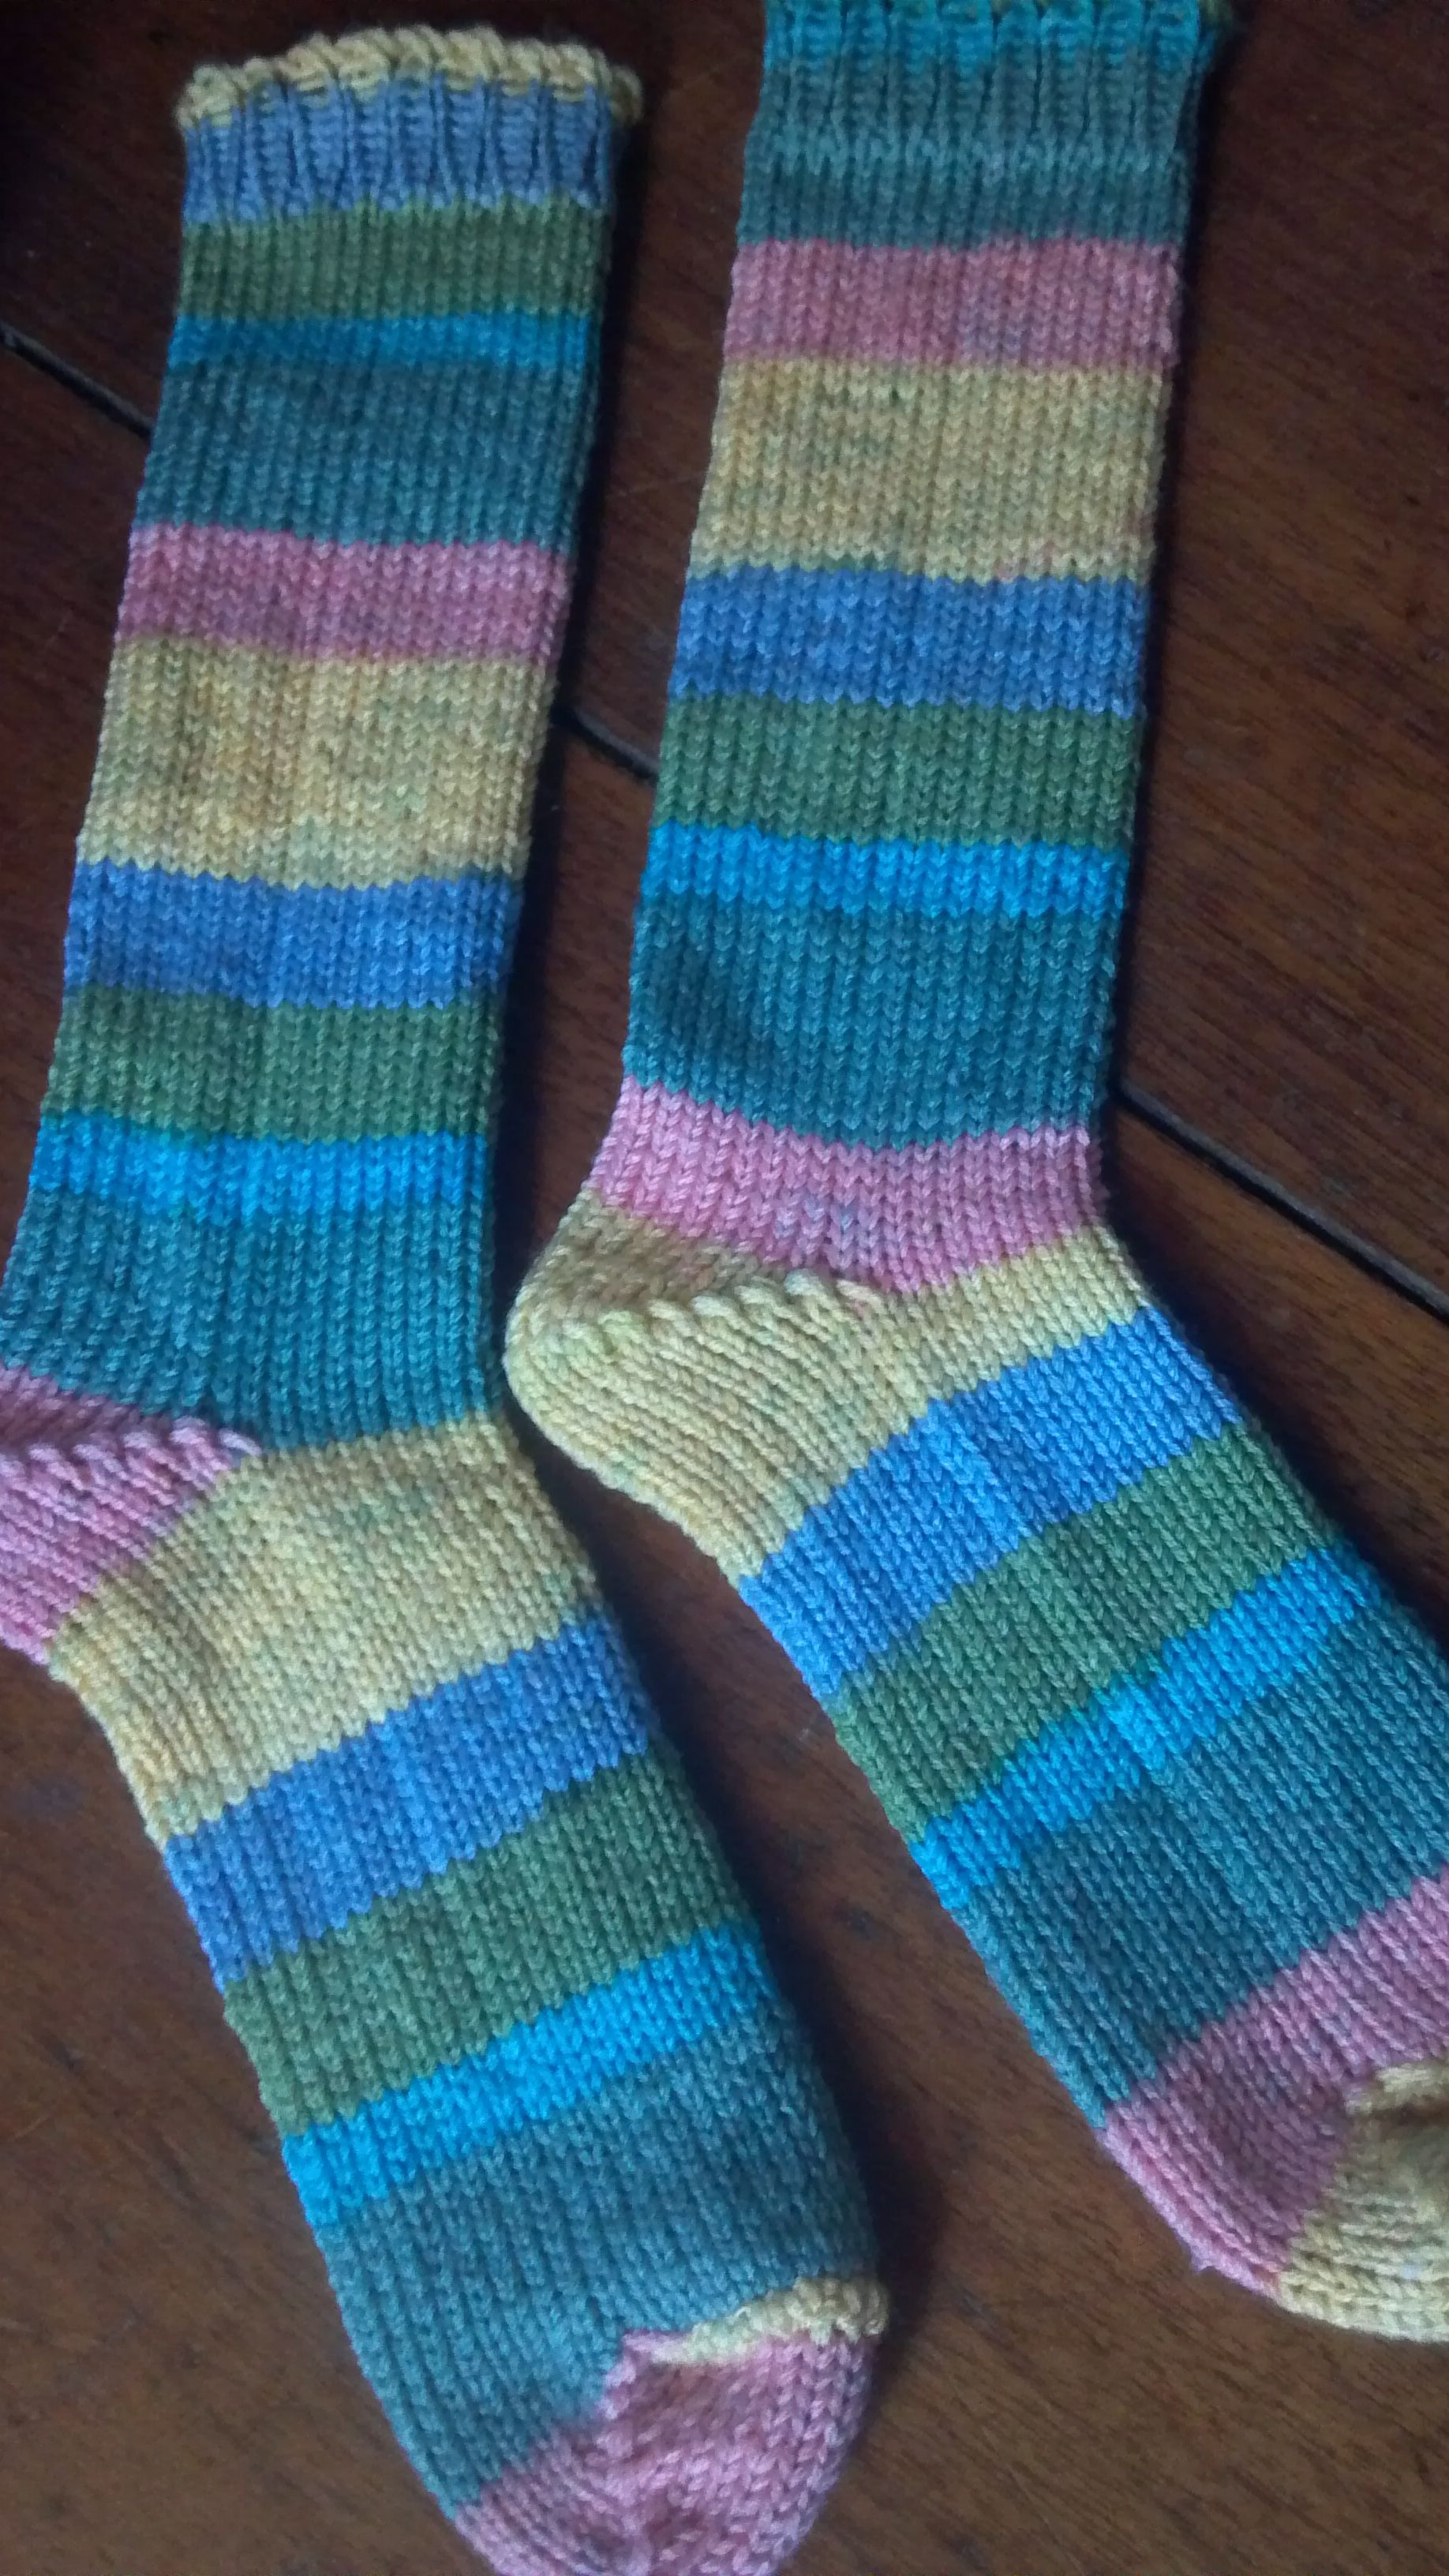 Knitting Socks On A Loom : Sweet striped loom knitted socks for my girl basic rib